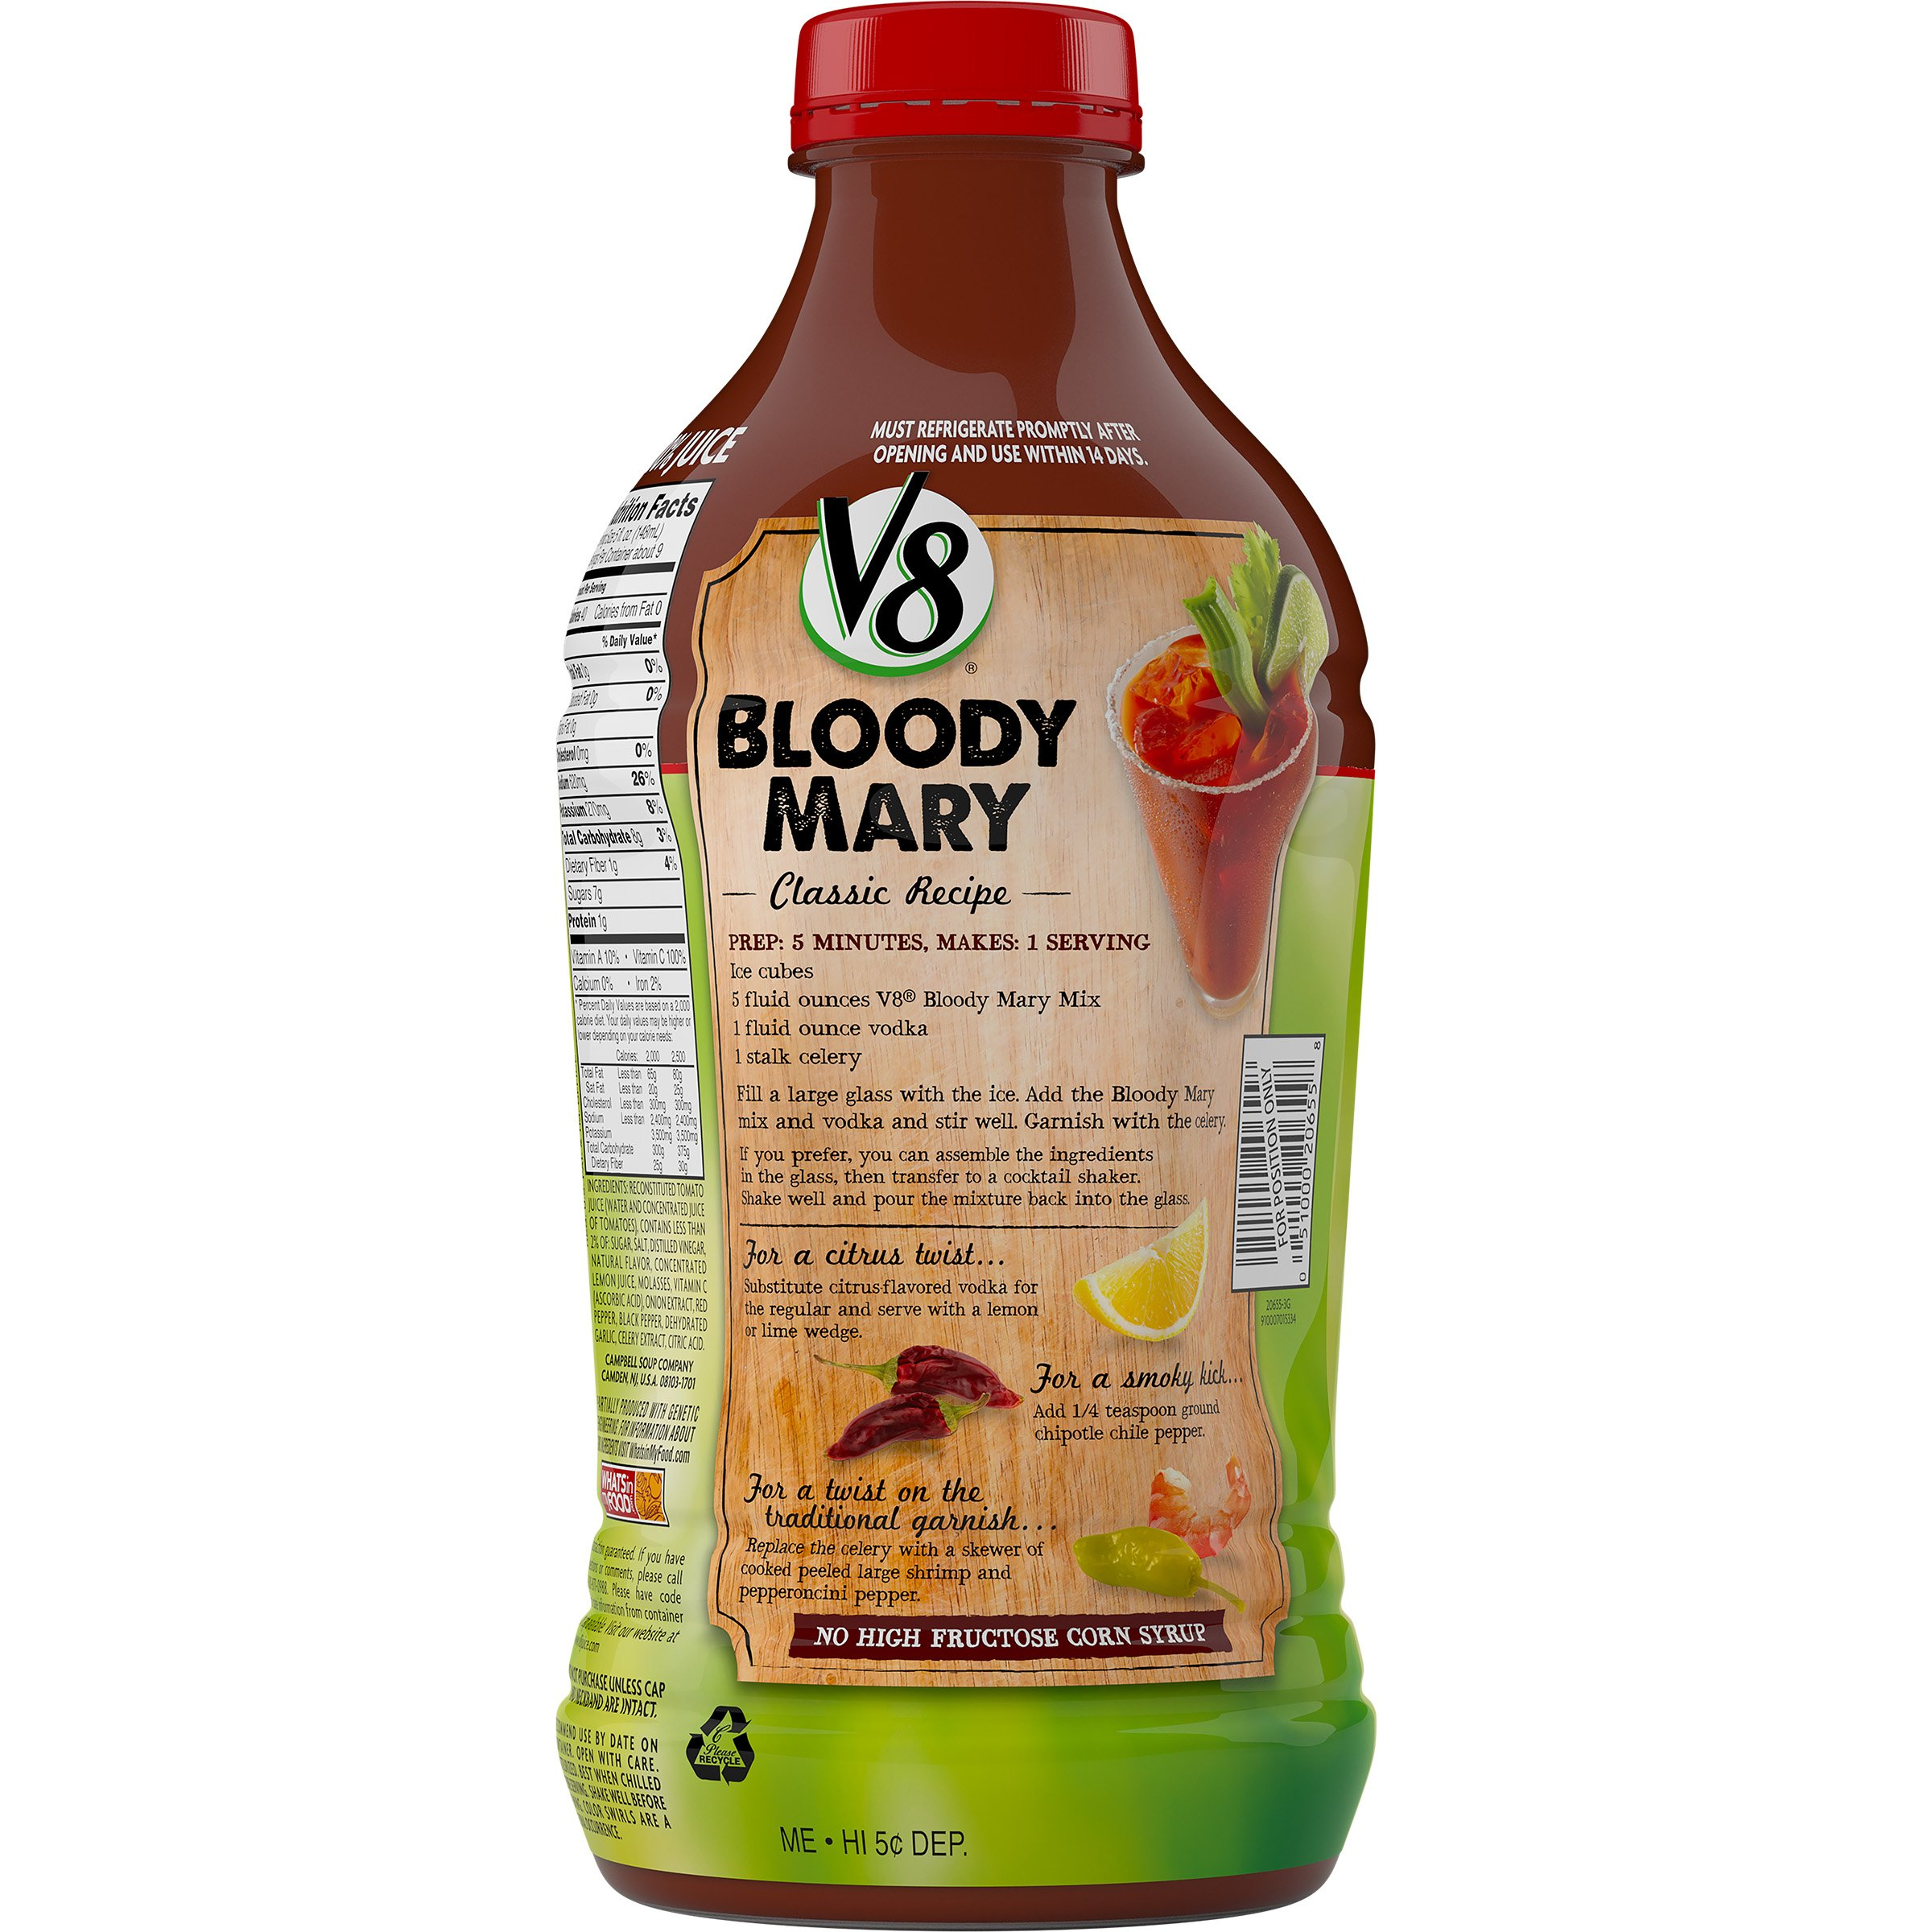 V8 Bloody Mary Mix, 46 oz. Bottle (Pack of 6) by V8 (Image #1)